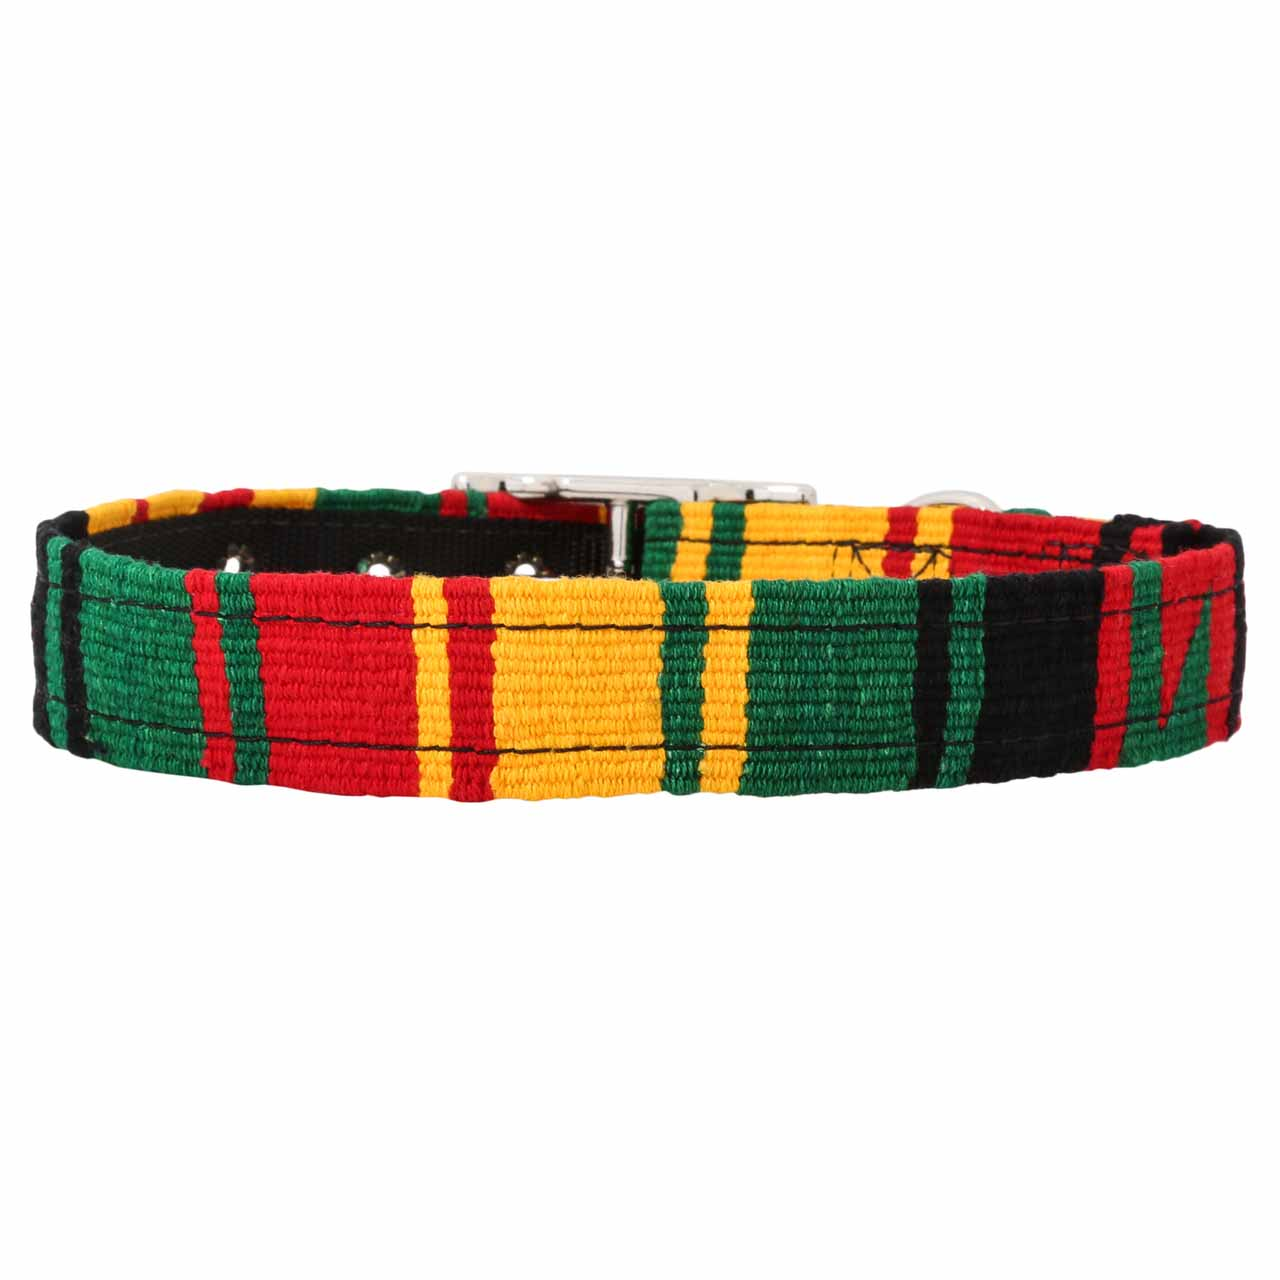 MAYA Buckle Dog Collar - Rasta